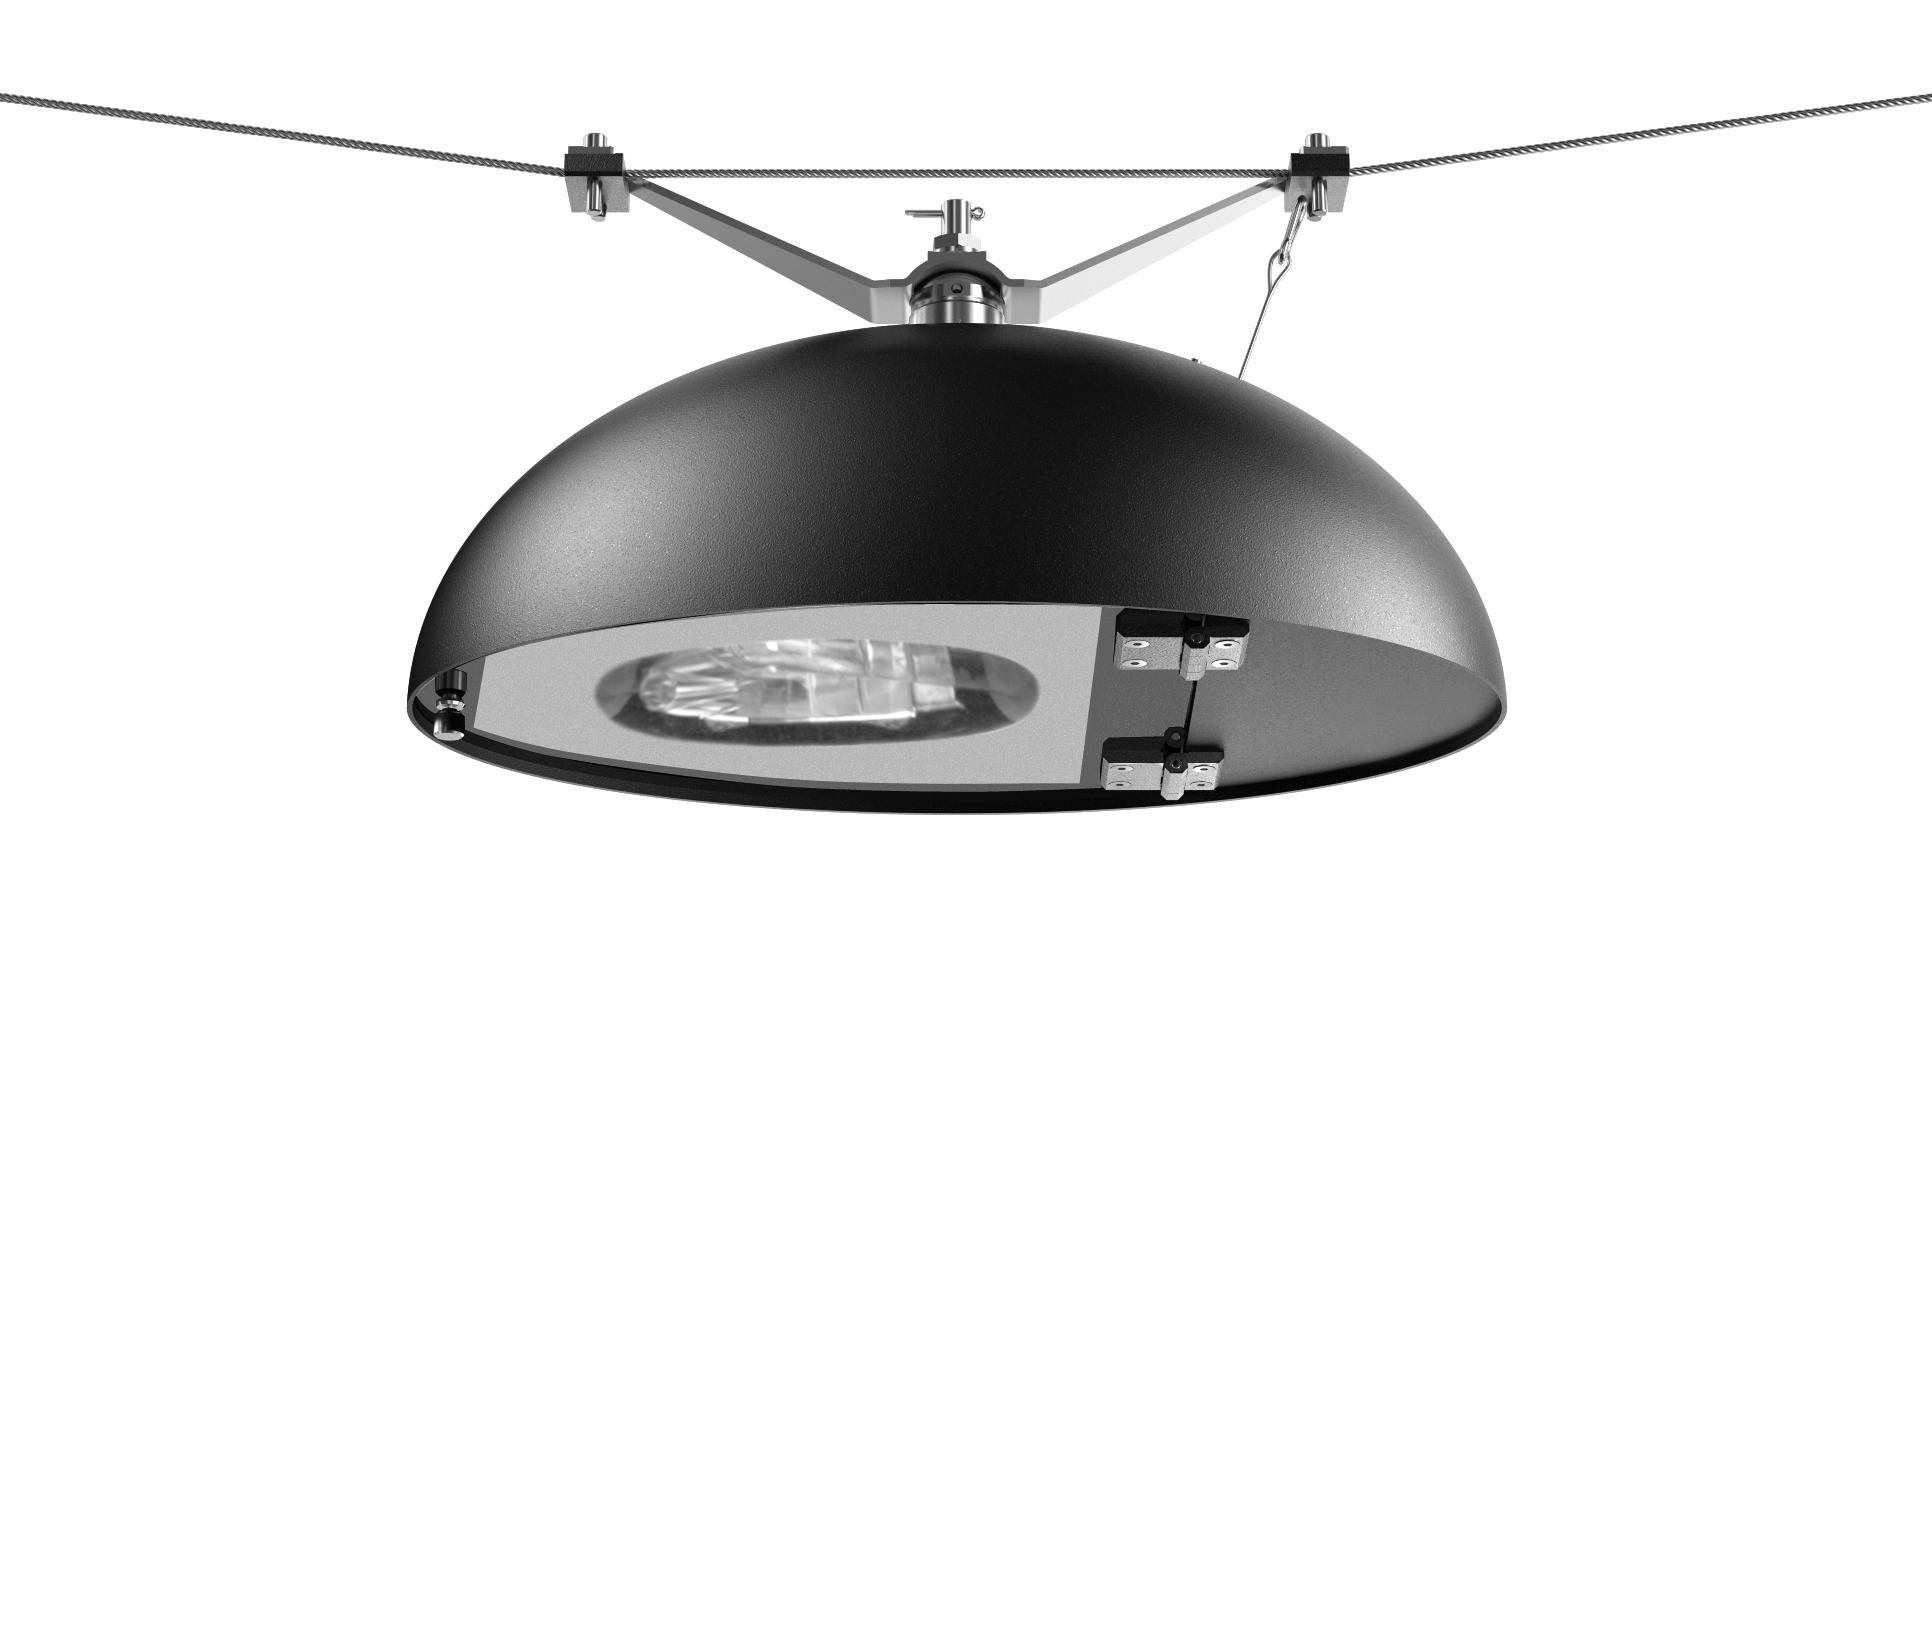 Canto led catenary suspended luminaire path lights from for Suspente luminaire